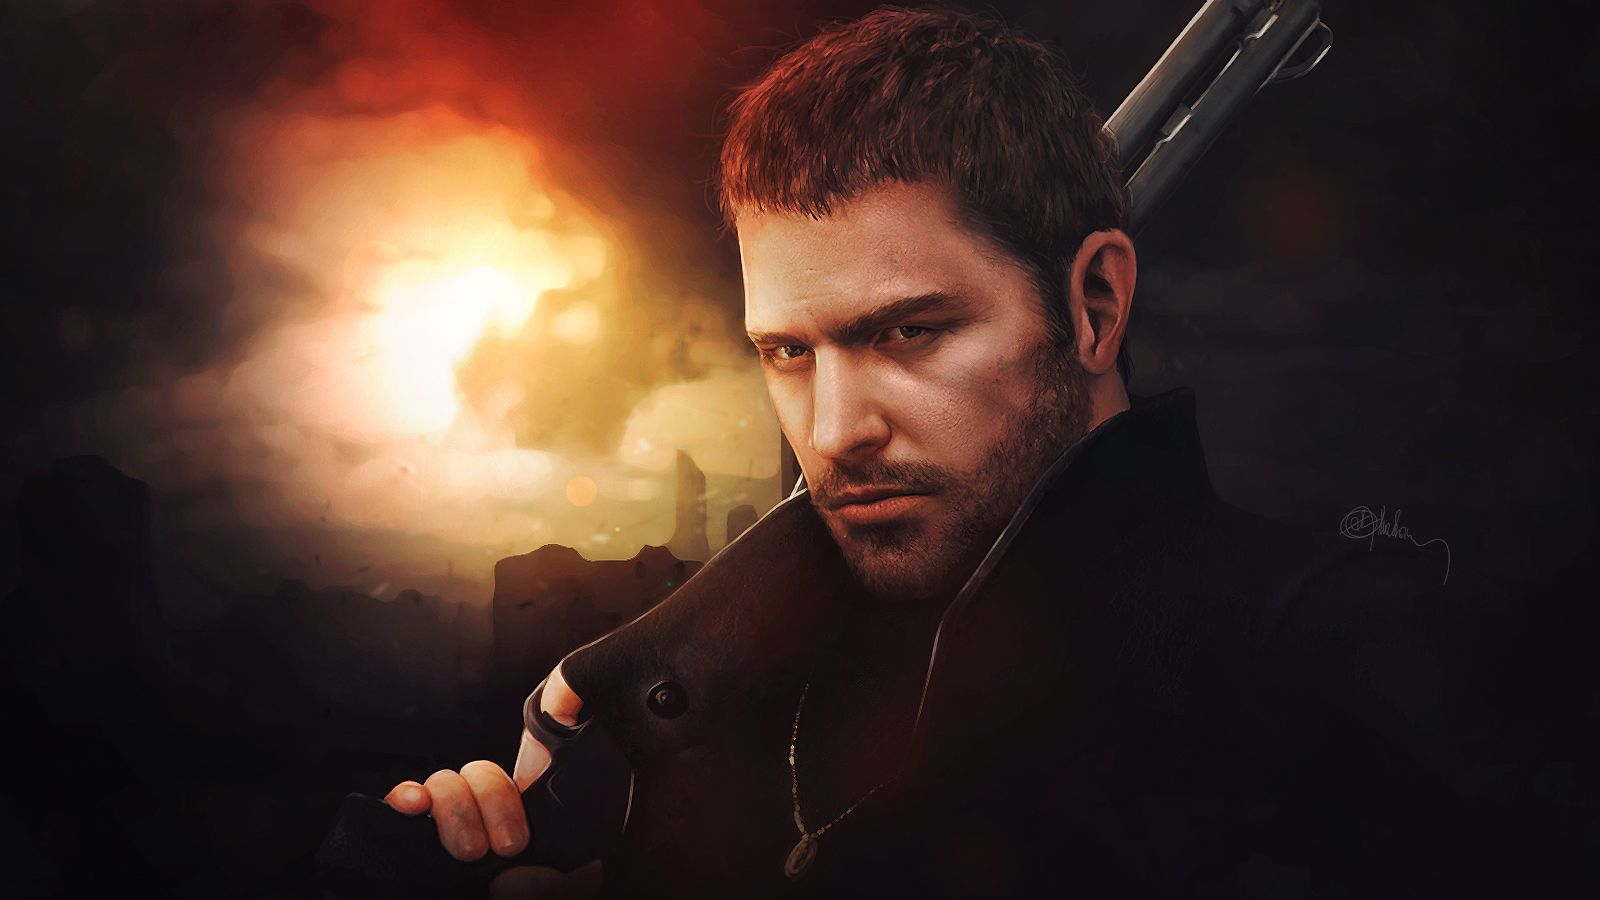 Photorealistic Chris Redfield Resident Evil 6 By Push Pulse